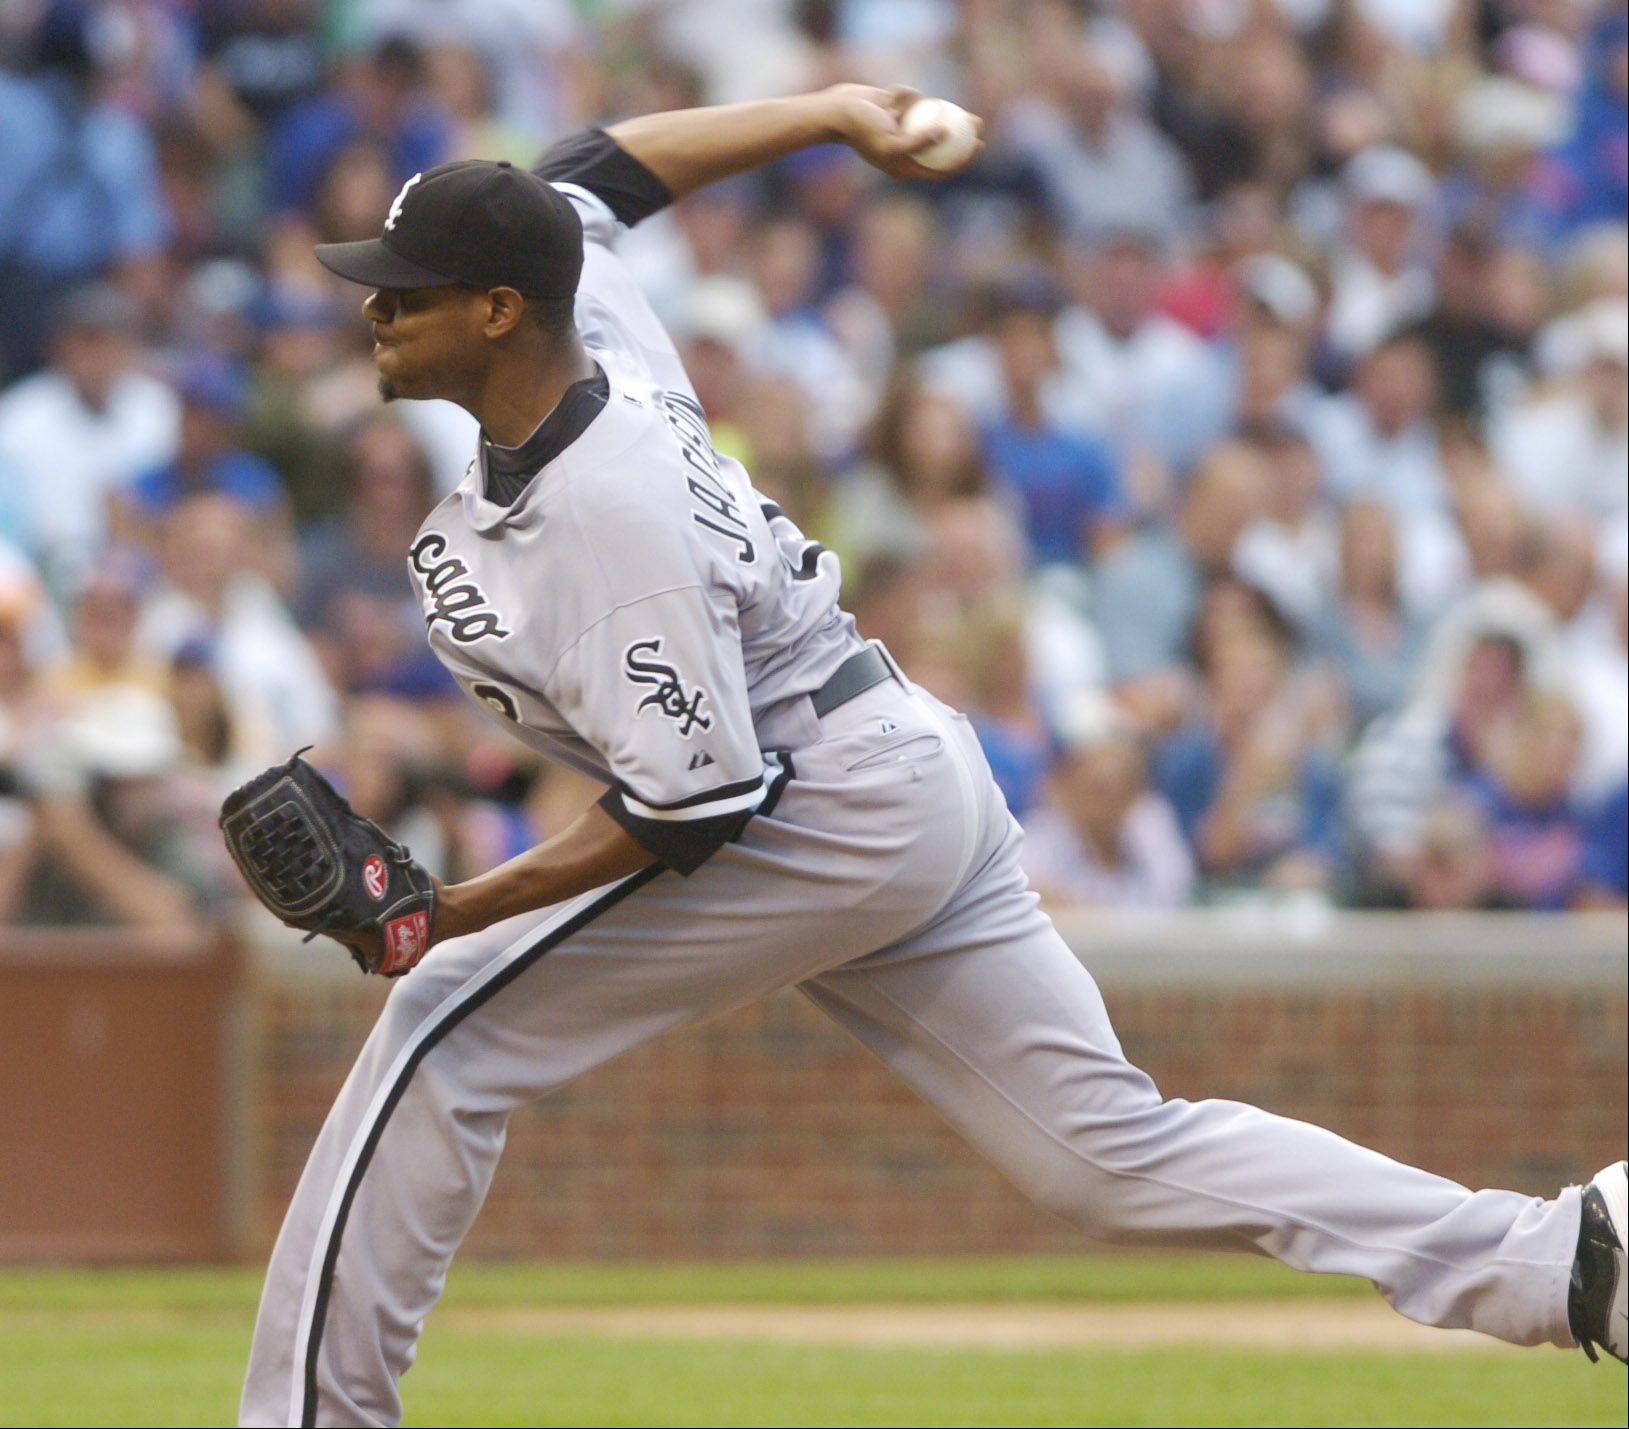 White Sox starting pitcher Edwin Jackson delivers against the Cubs during Friday's game.